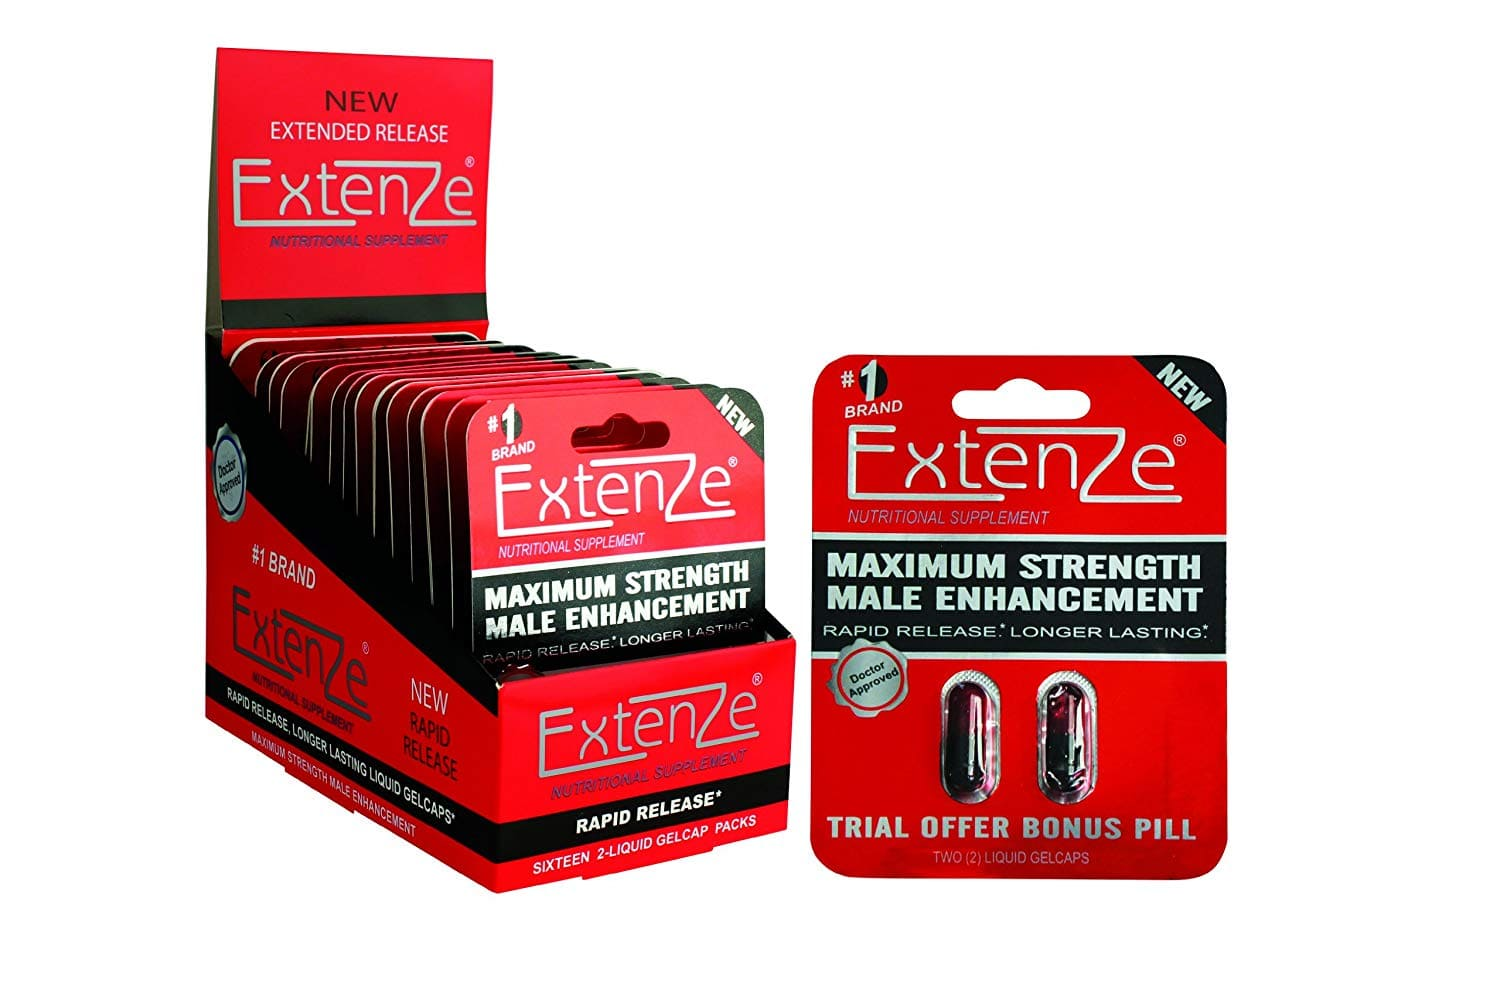 Extenze As A Workout Supplement